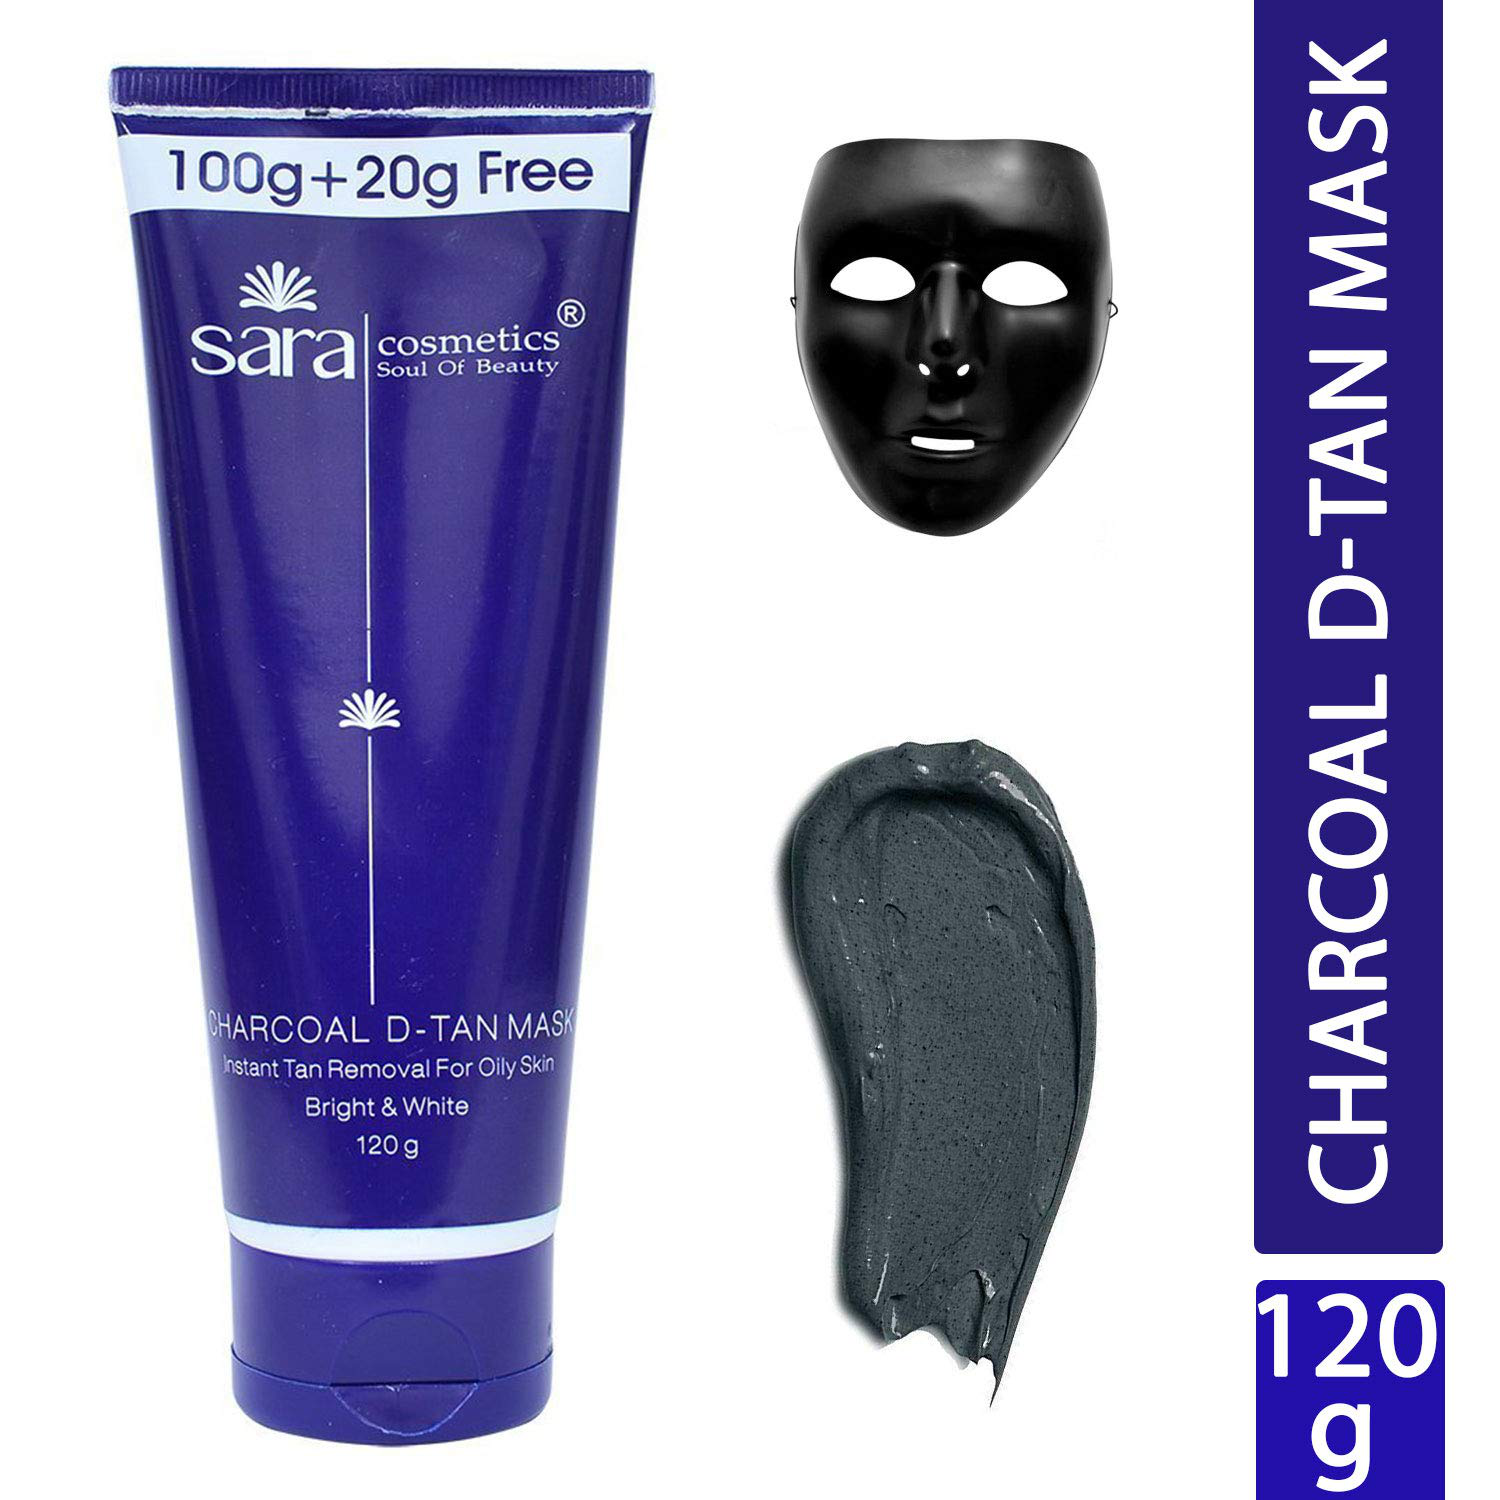 SARA SOUL OF BEAUTY Charcoal D-Tan Mask Ultra Glow and Instant Tan Removal of Blackheads Whiteheads and Dirt for Oily Skin